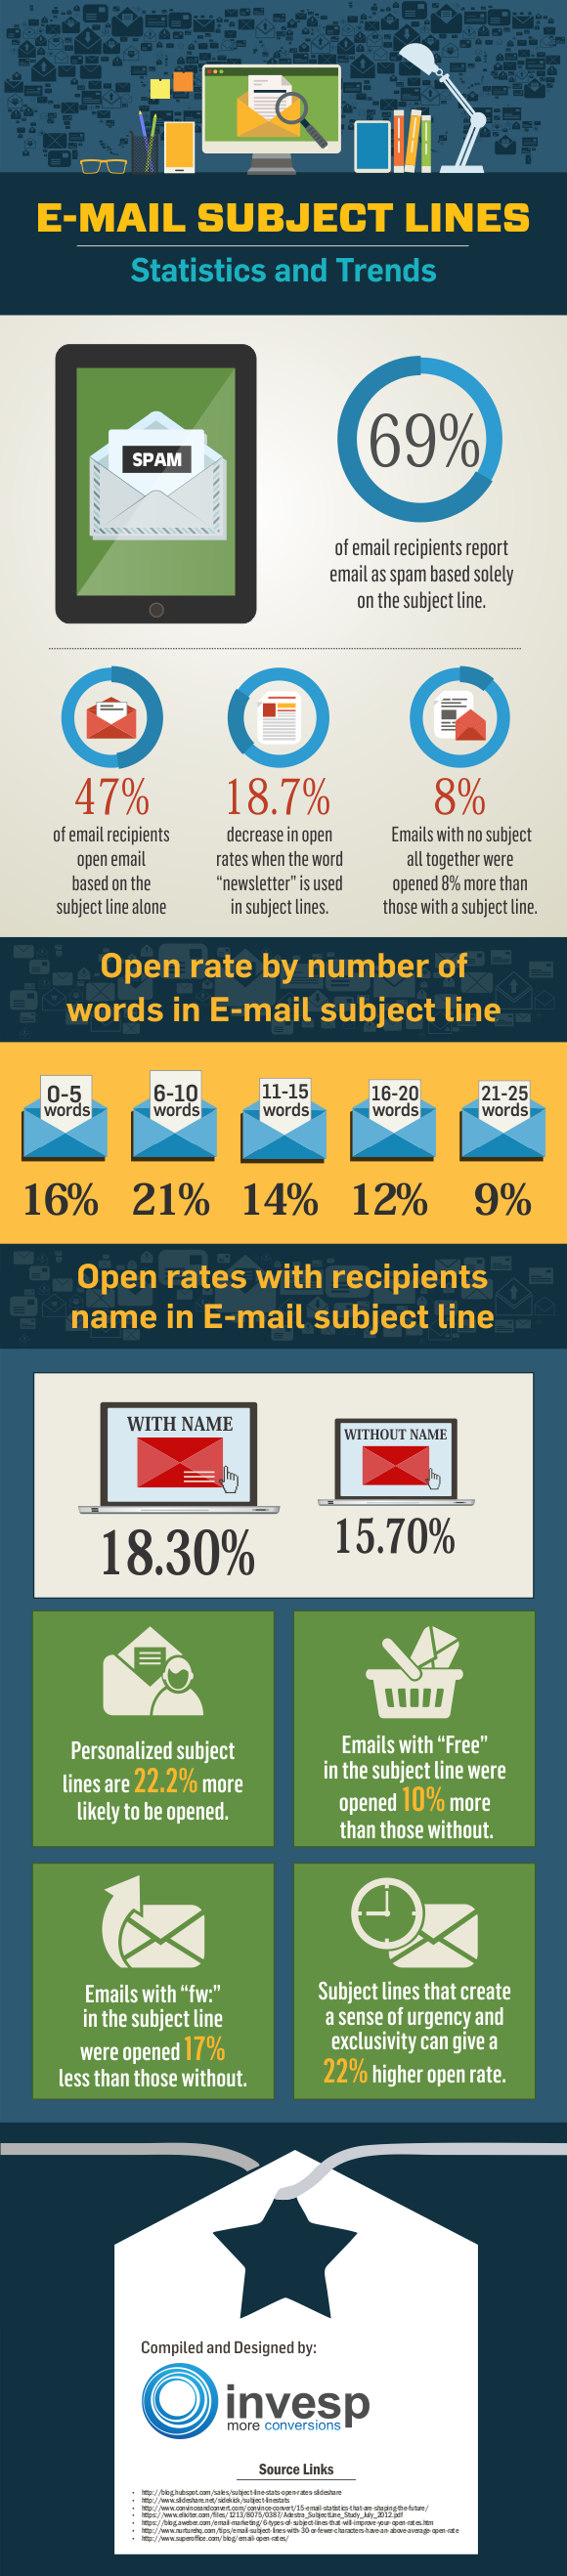 Email Subject Lines Statistics and Trends